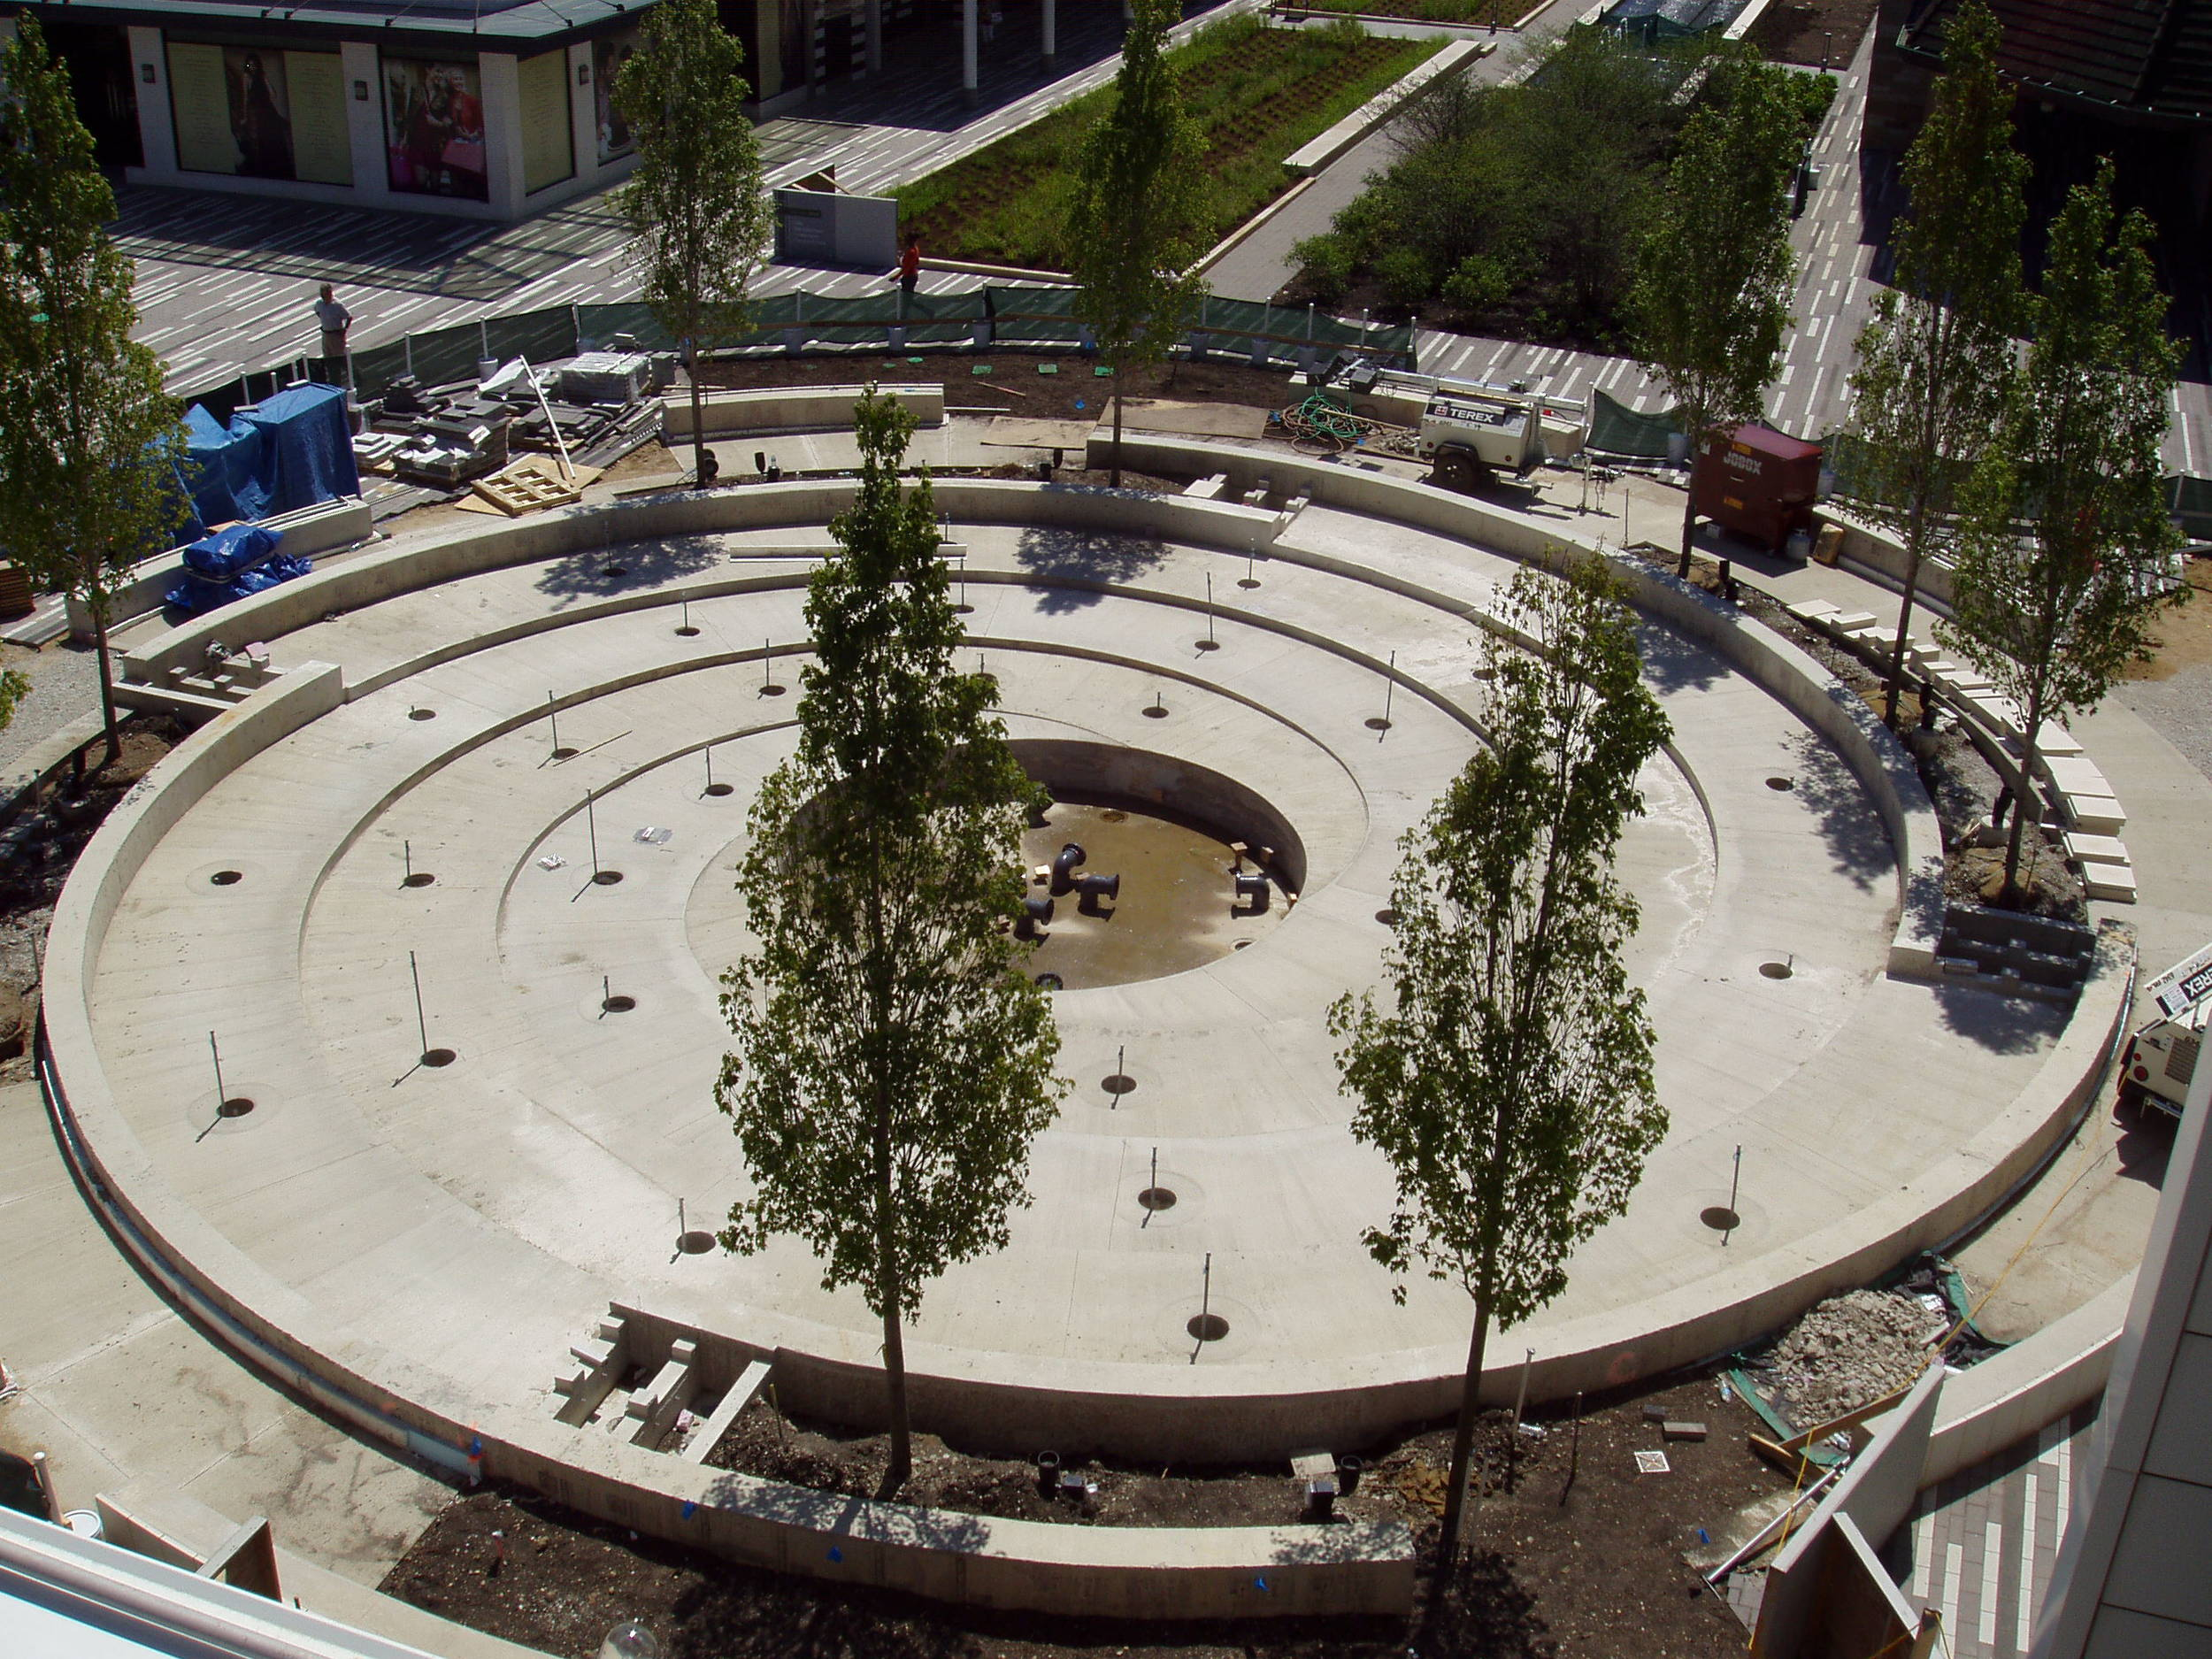 The concrete basin is cured.  A dozen ornamental trees are planted in perimeter planters along the fountain walls.  To the side of the planters are the weirs that supply water to the fountain.  Pipe connections for the jets are stubbed up.